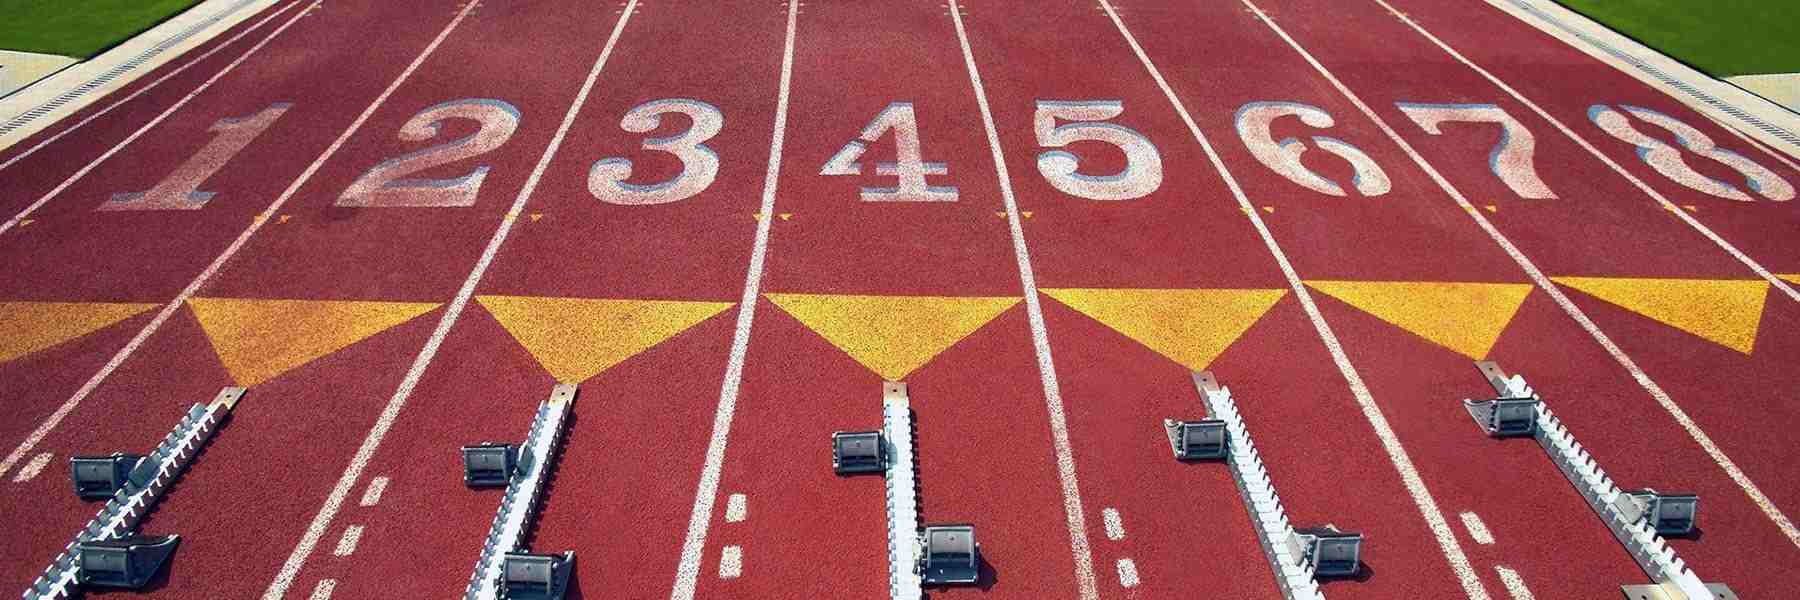 track & field managment software